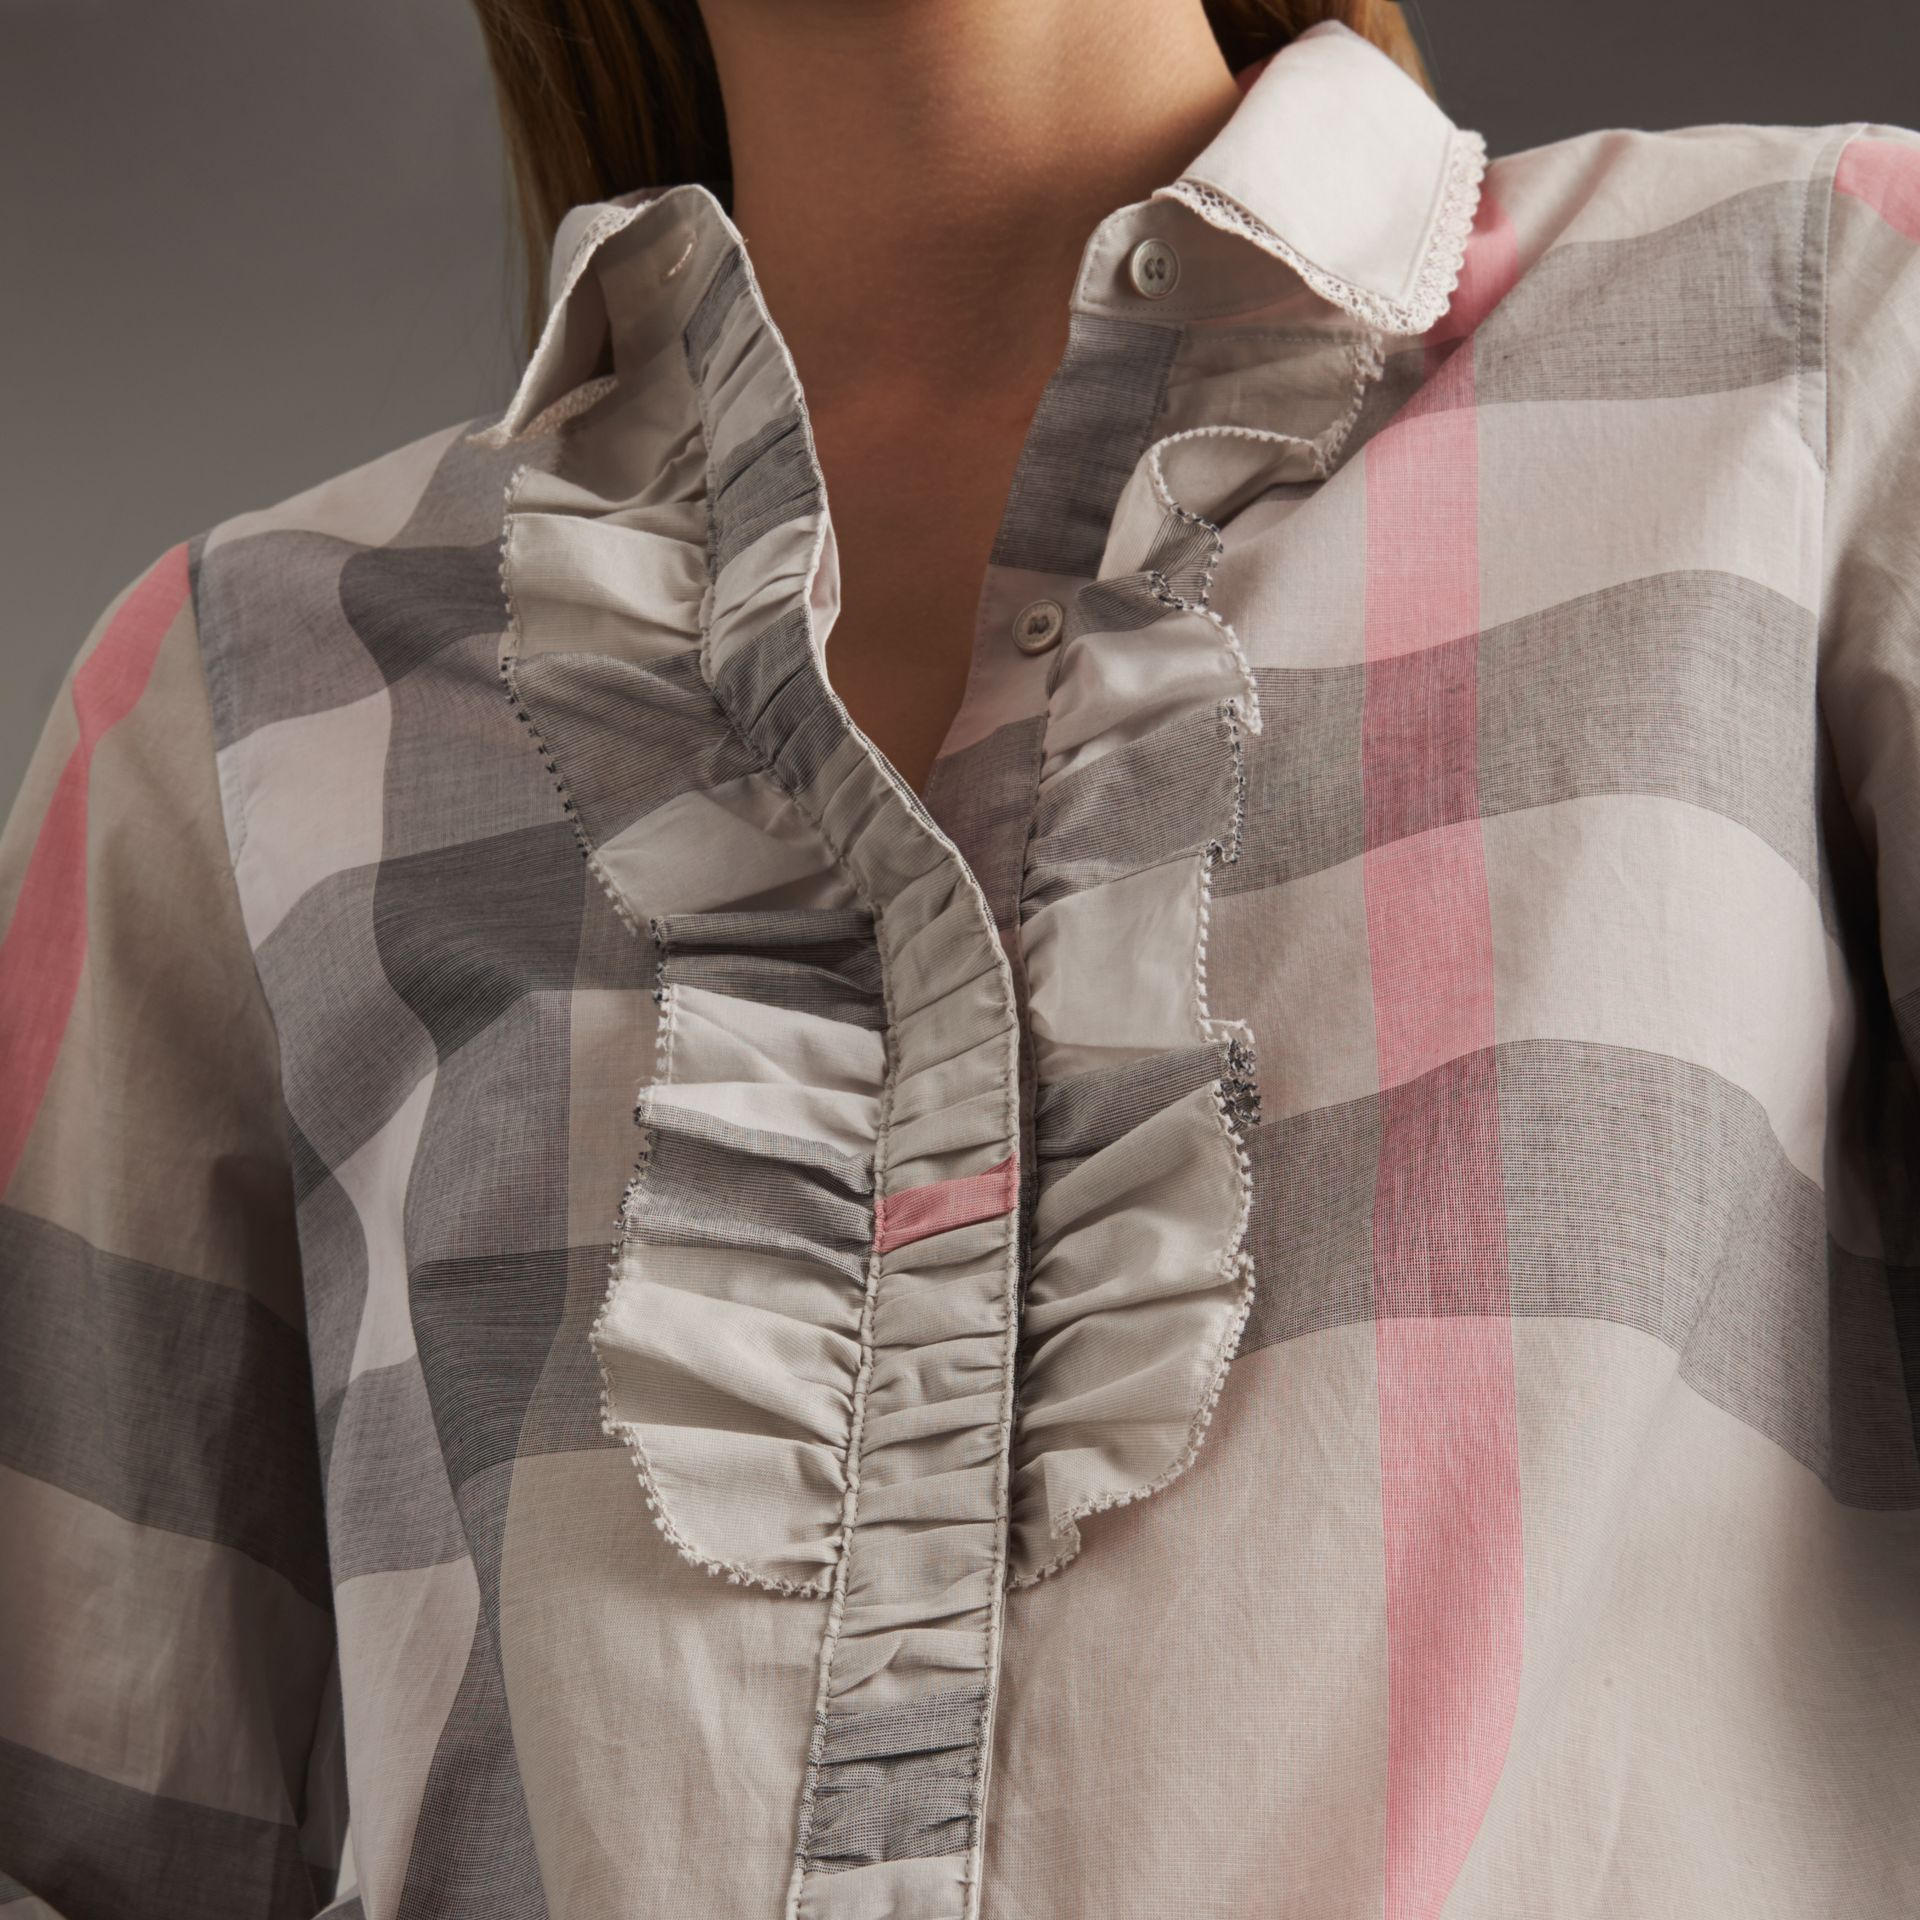 Ruffle Detail and Lace Trim Check Cotton Shirt in Pale Taupe - Women | Burberry - gallery image 6